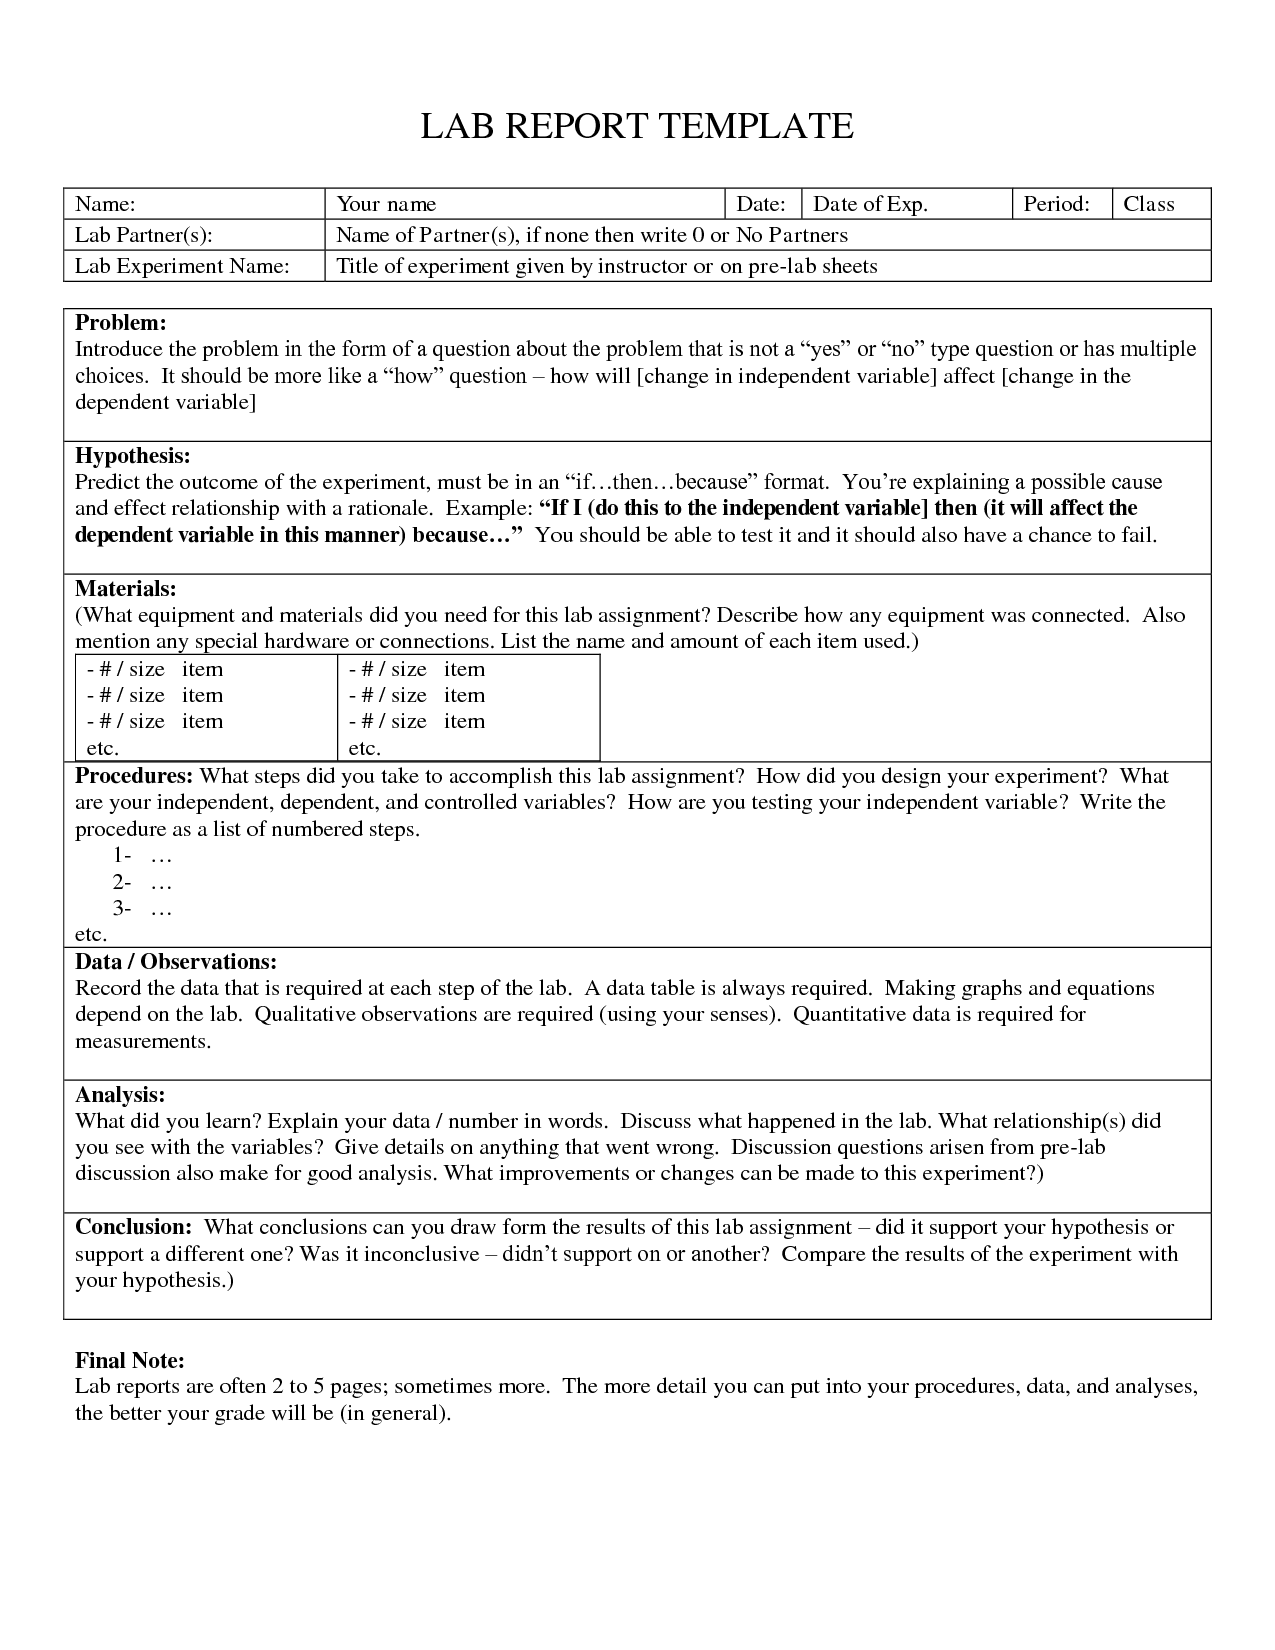 Science Report Examples